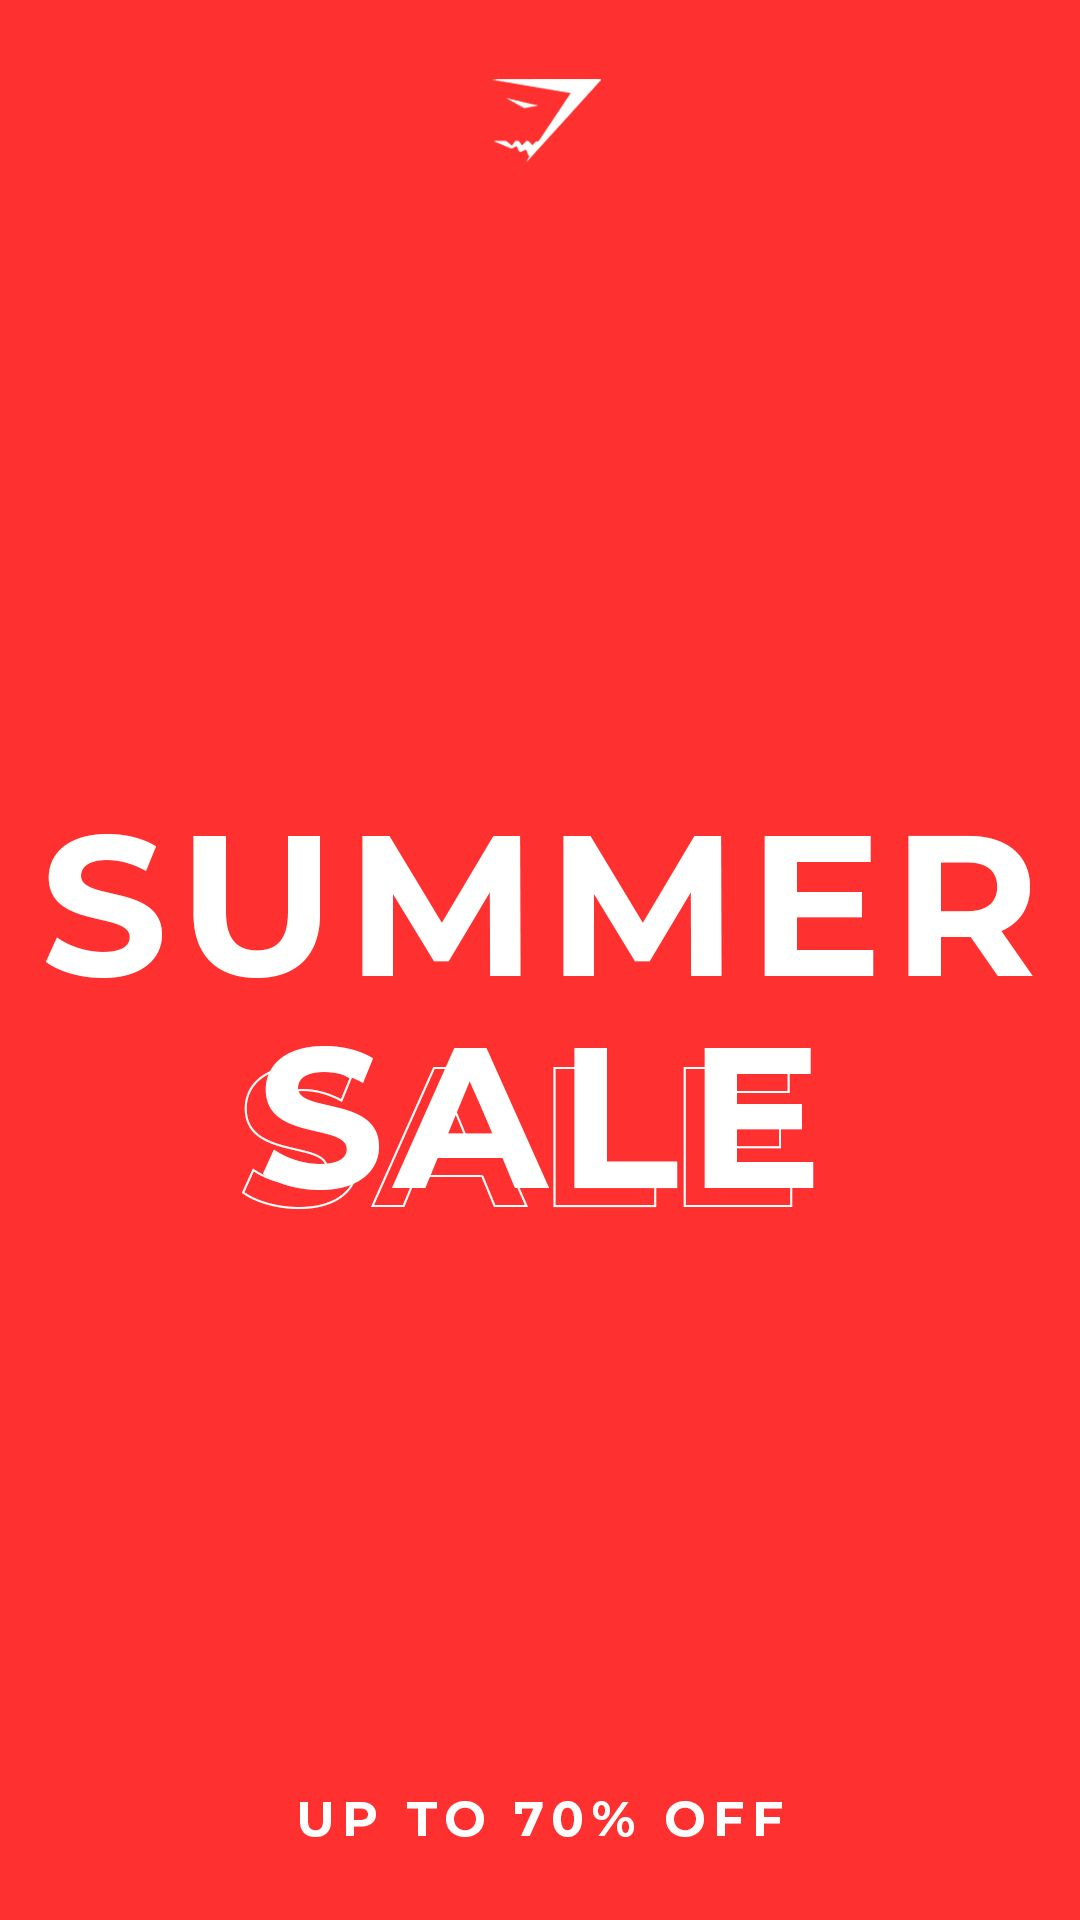 Gymshark Summer Sale 2019 Starting 3rd Of June At 3pm Bst Gymshark Gym Sweat Train Perform Seamless Exercise Gymshark Gym Outfit Gym Workout Outfits